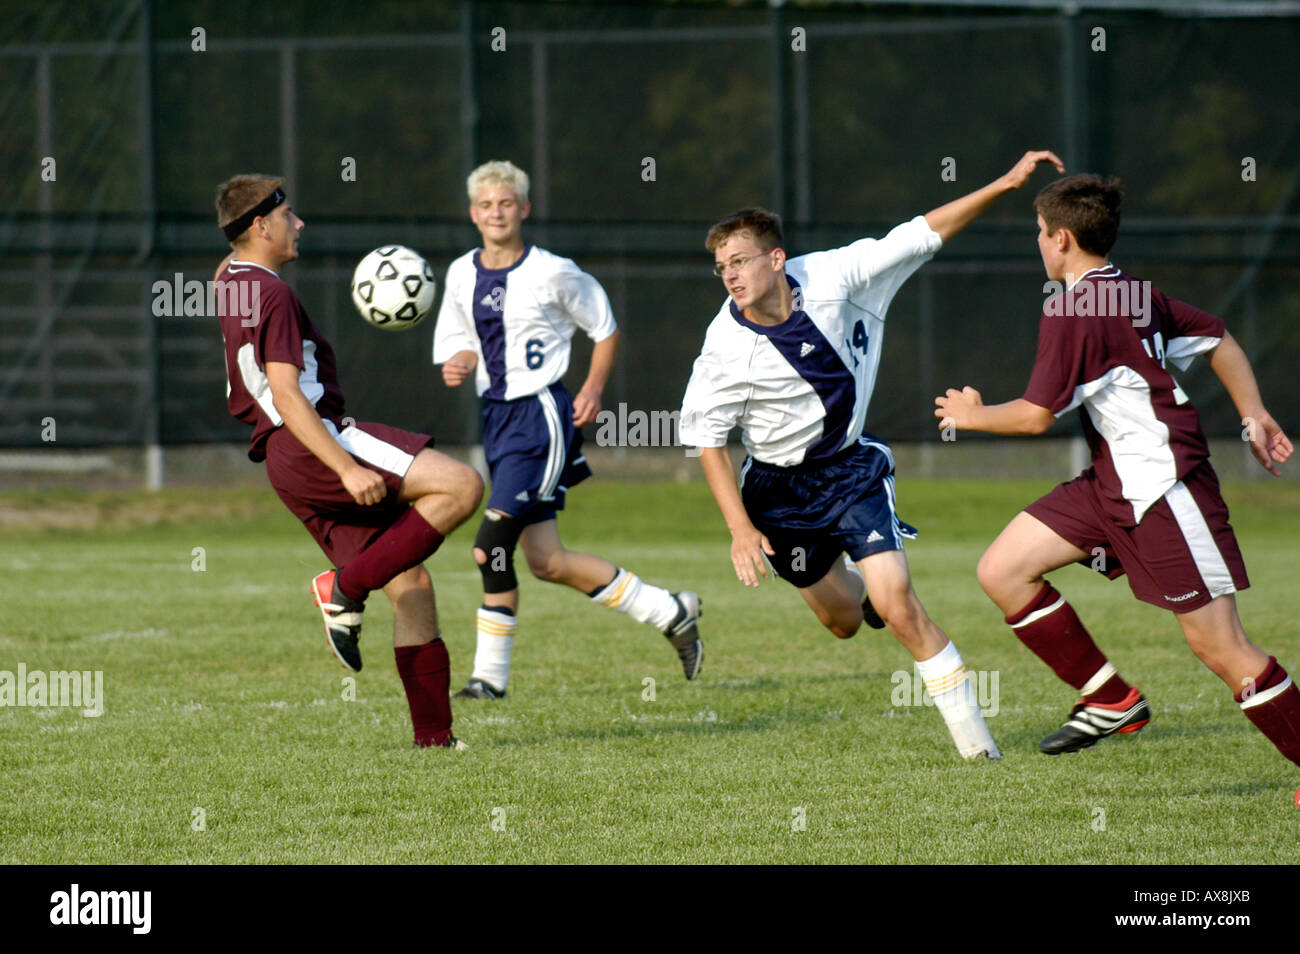 High School American Soccer action - Stock Image